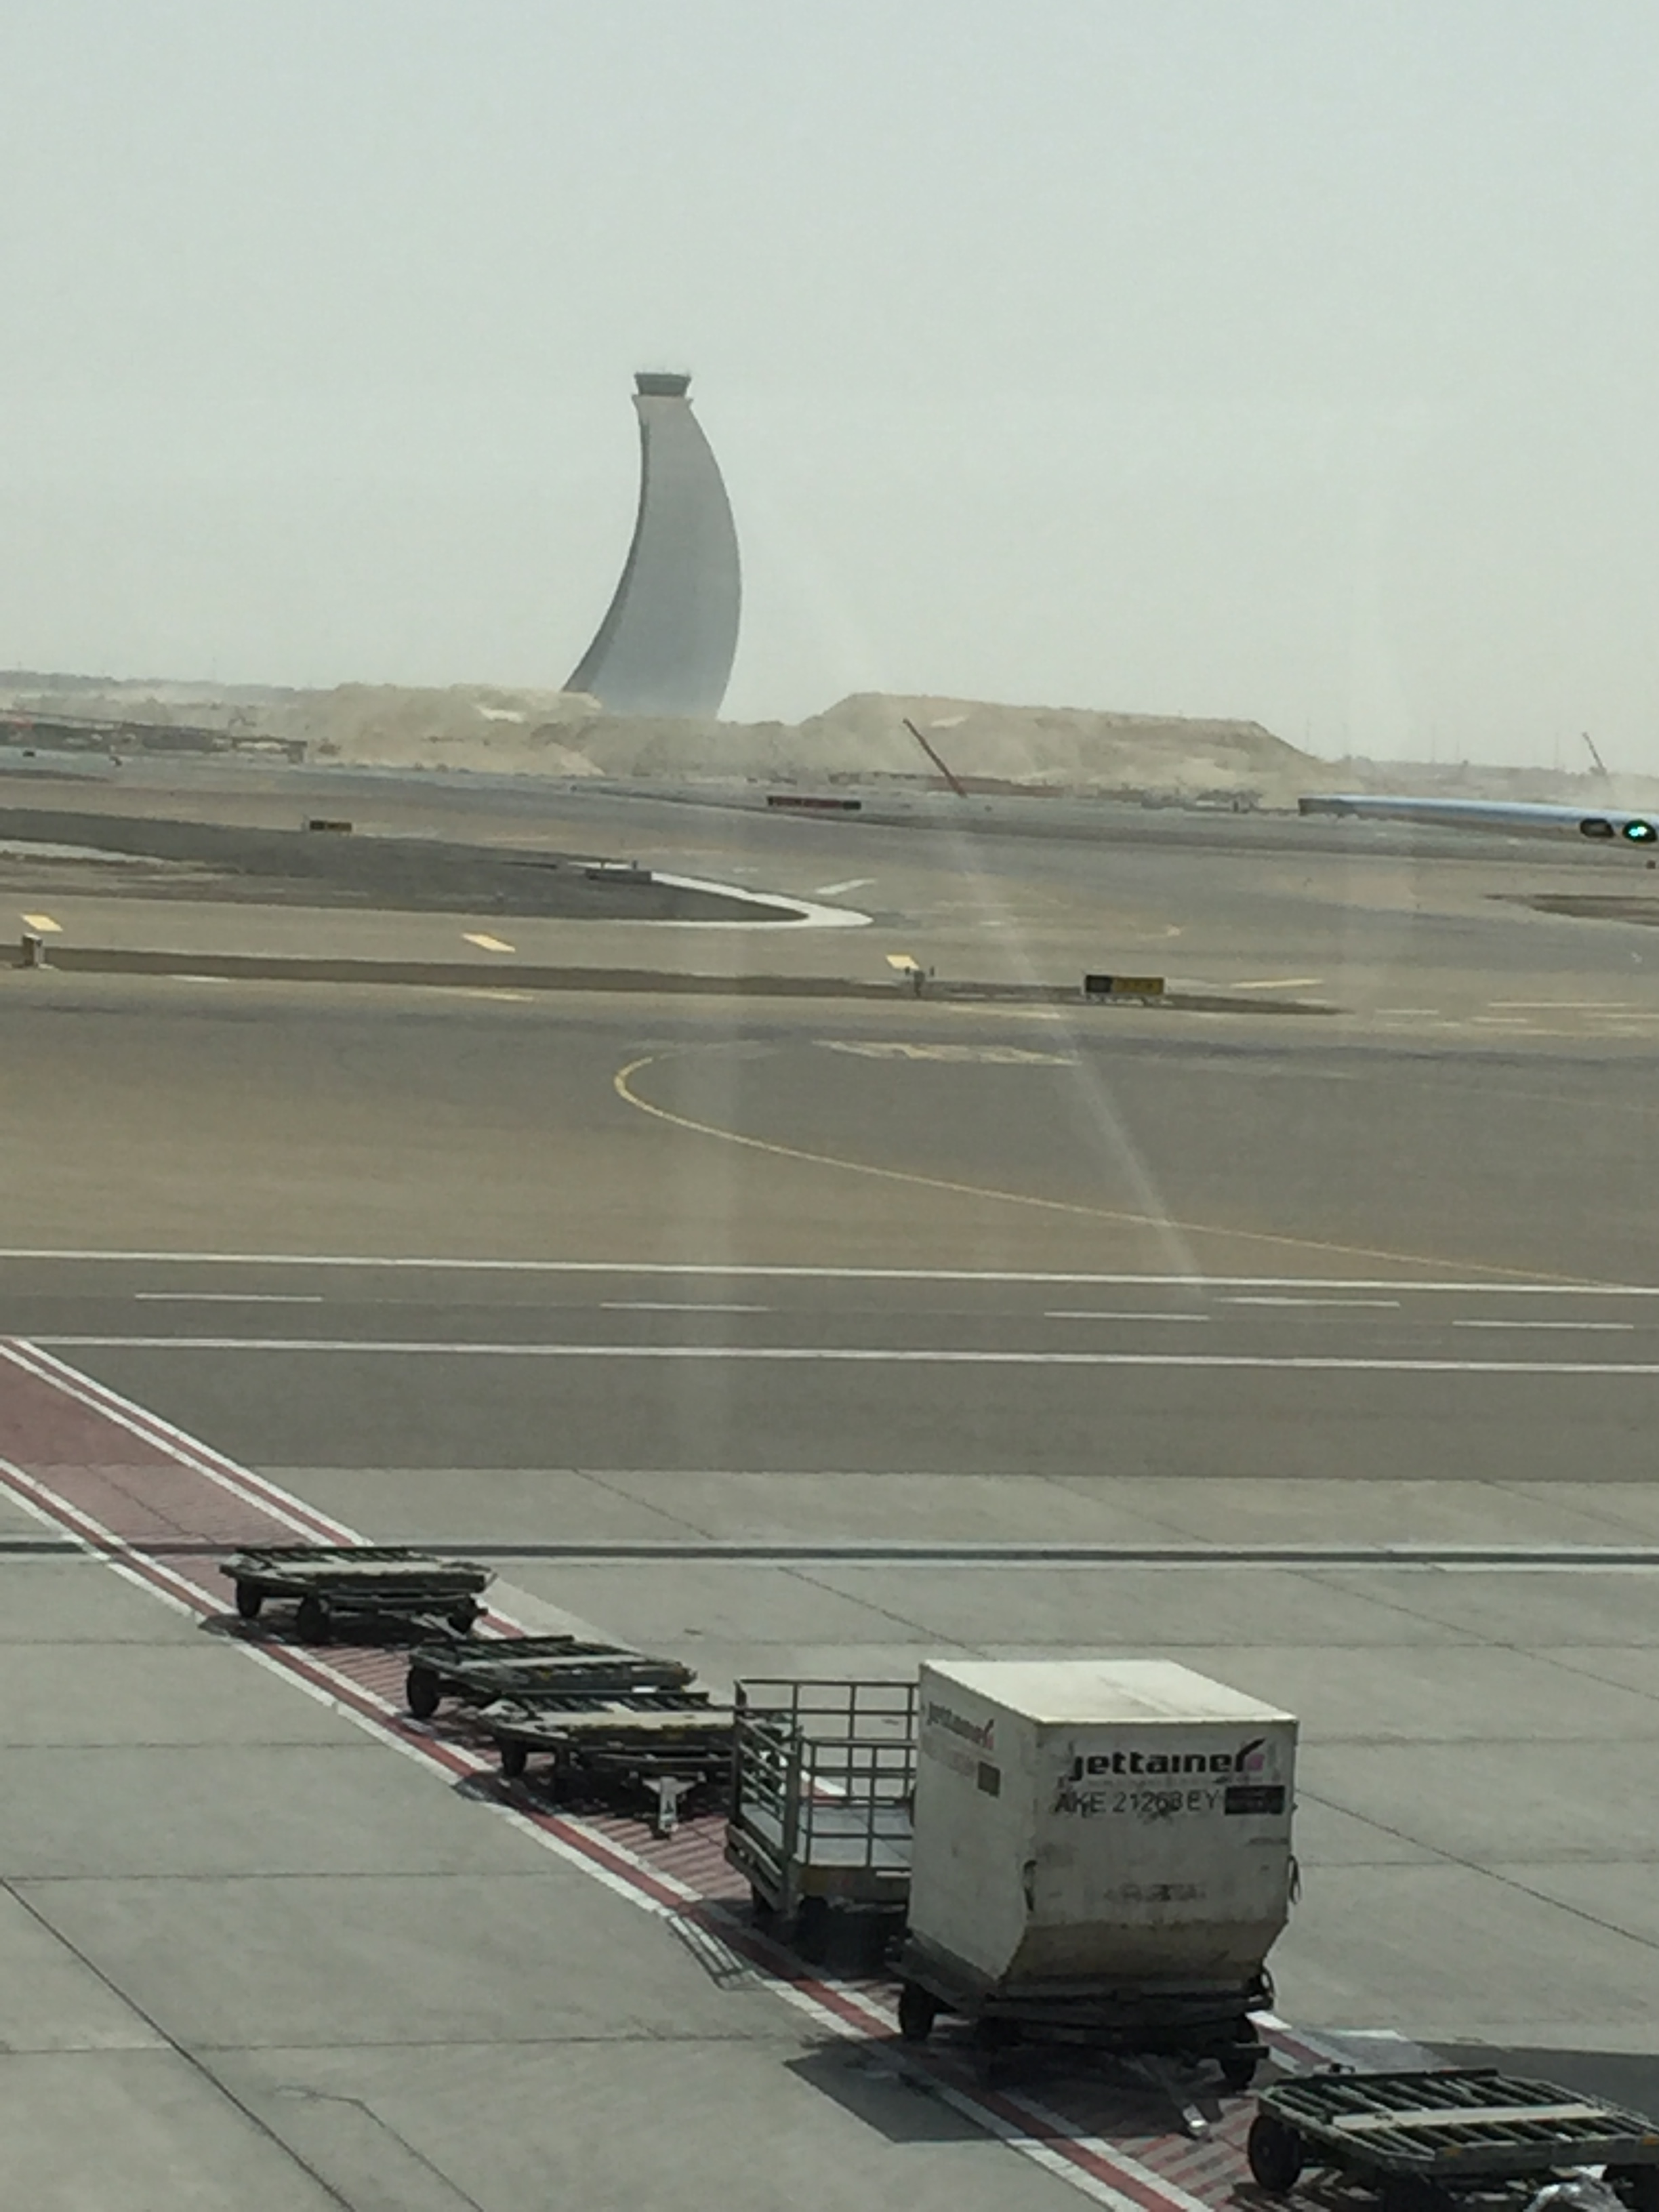 Views from the Abu Dhabi airport, my connection where my emergency passport got me in trouble one last time.